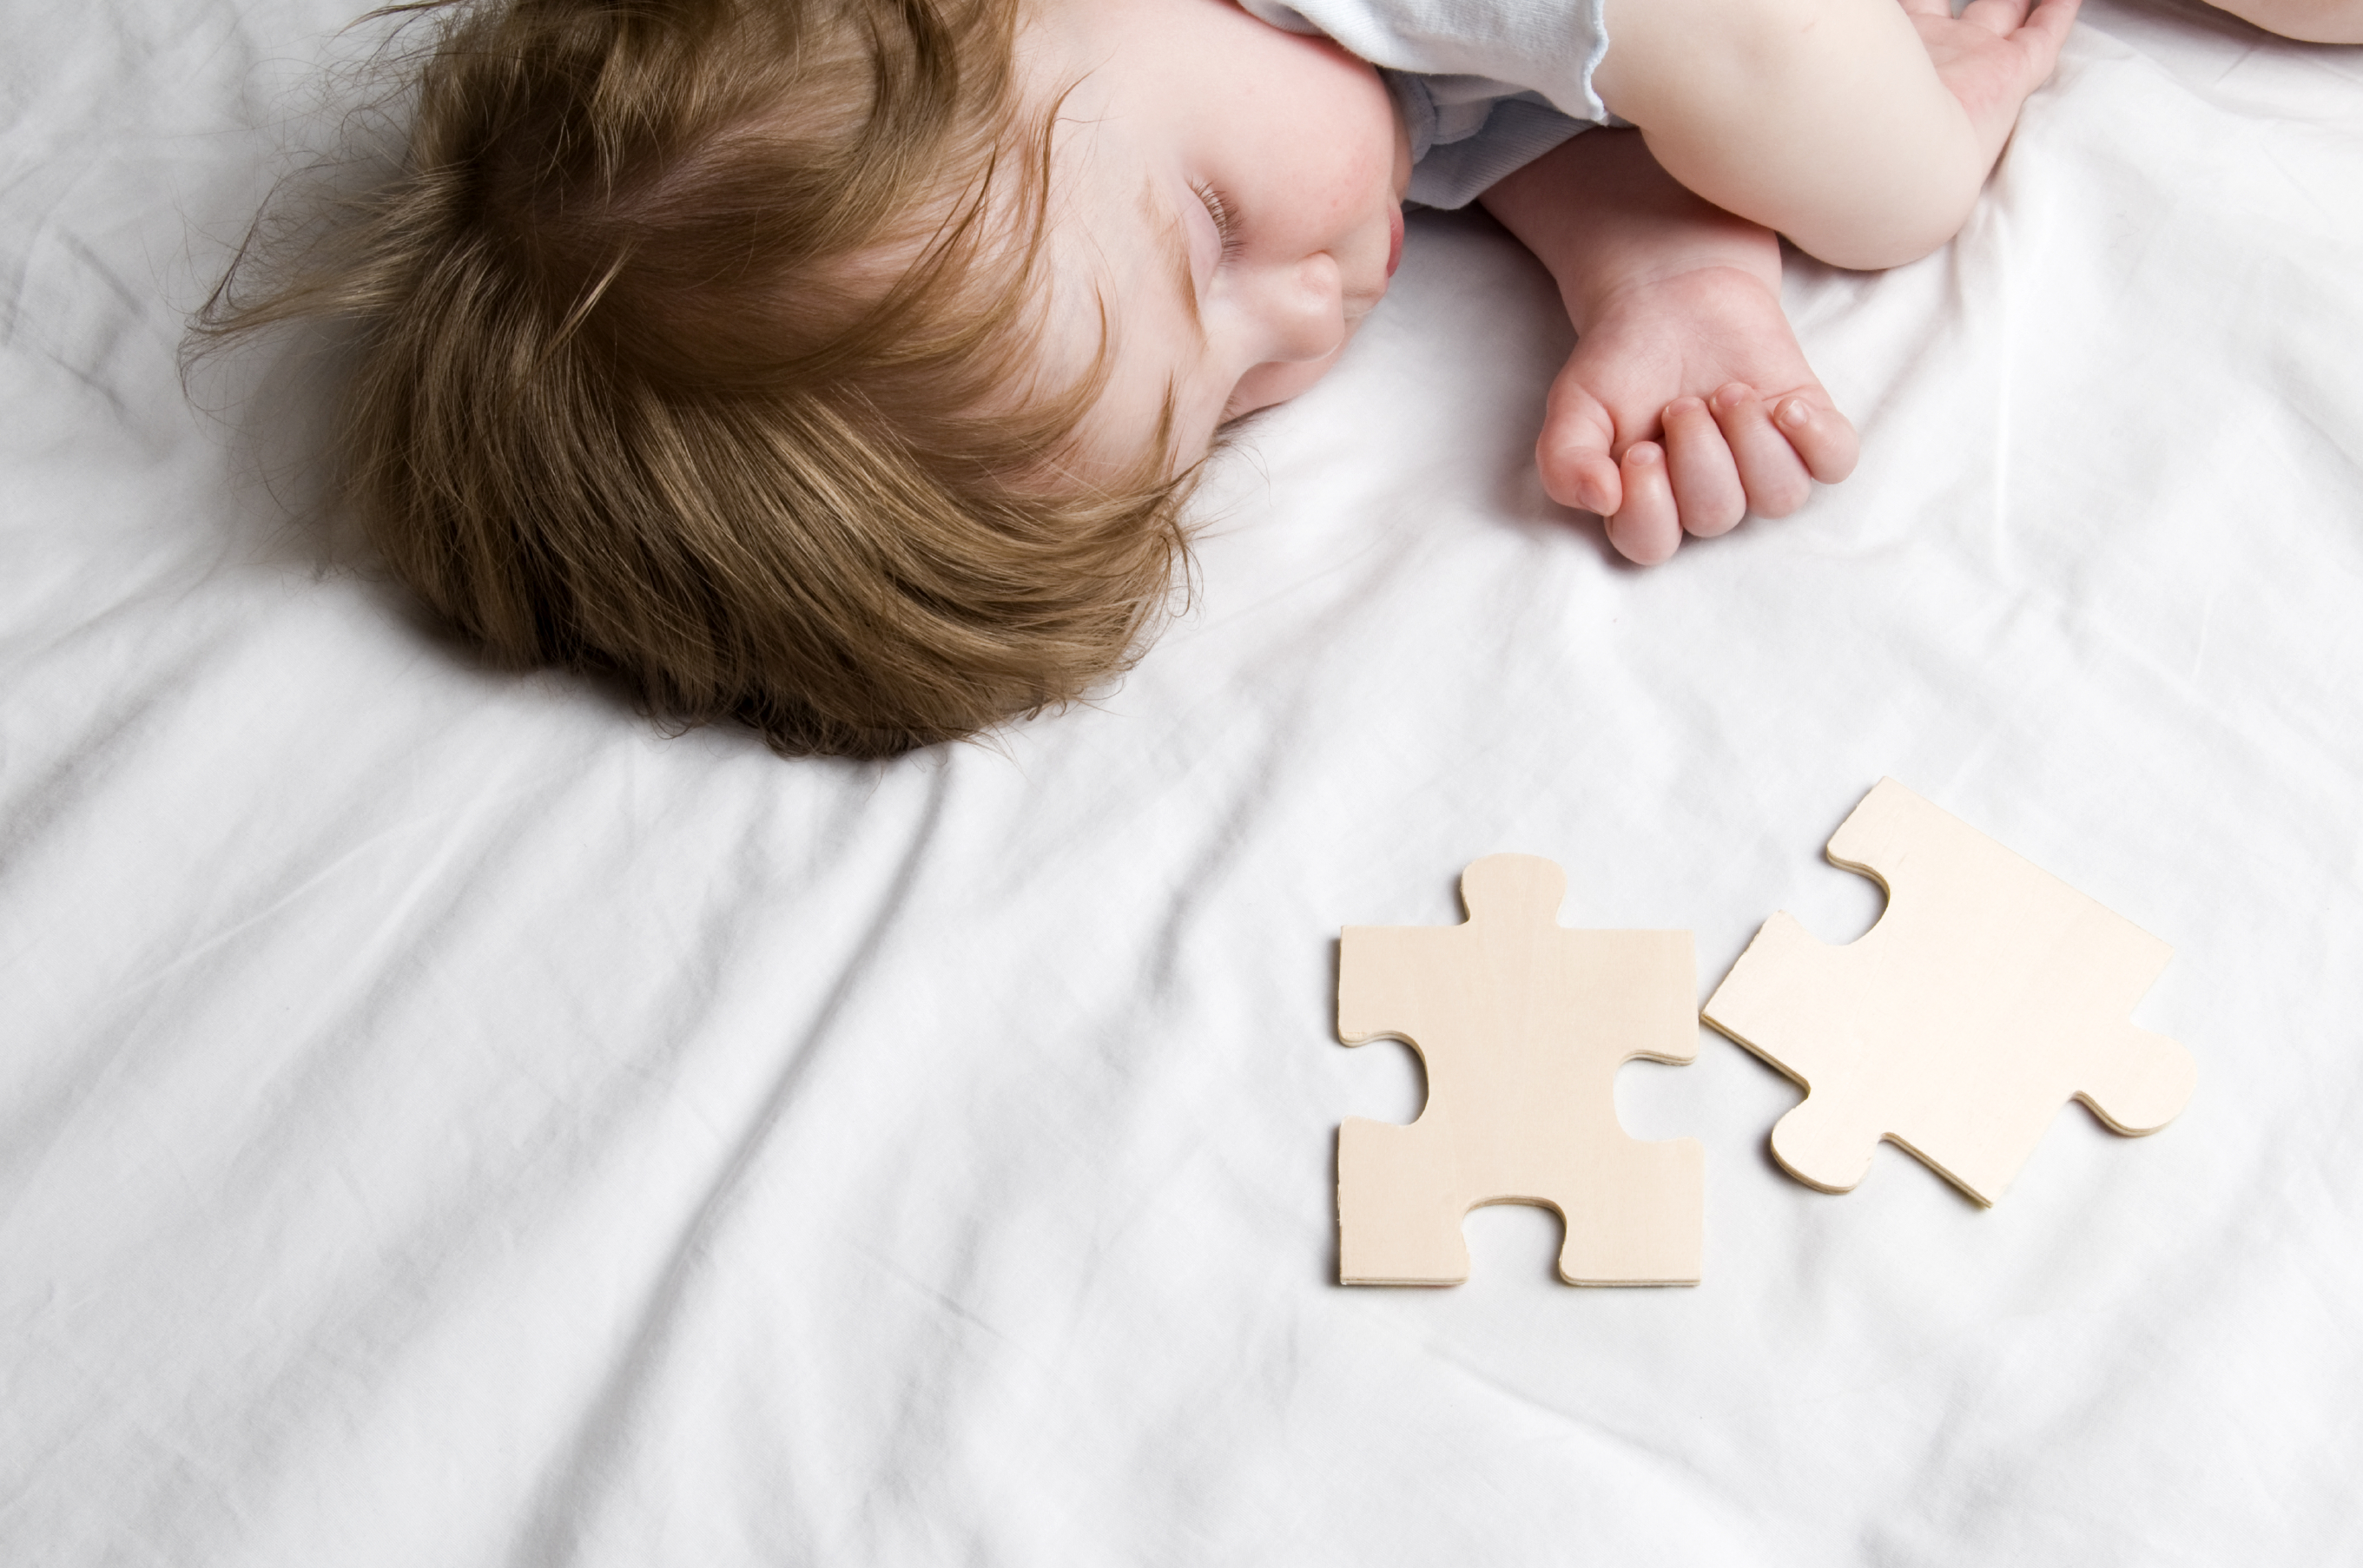 adhd in young children Do you have any suggestions for treating severe adhd in very young children (ages 2-4.